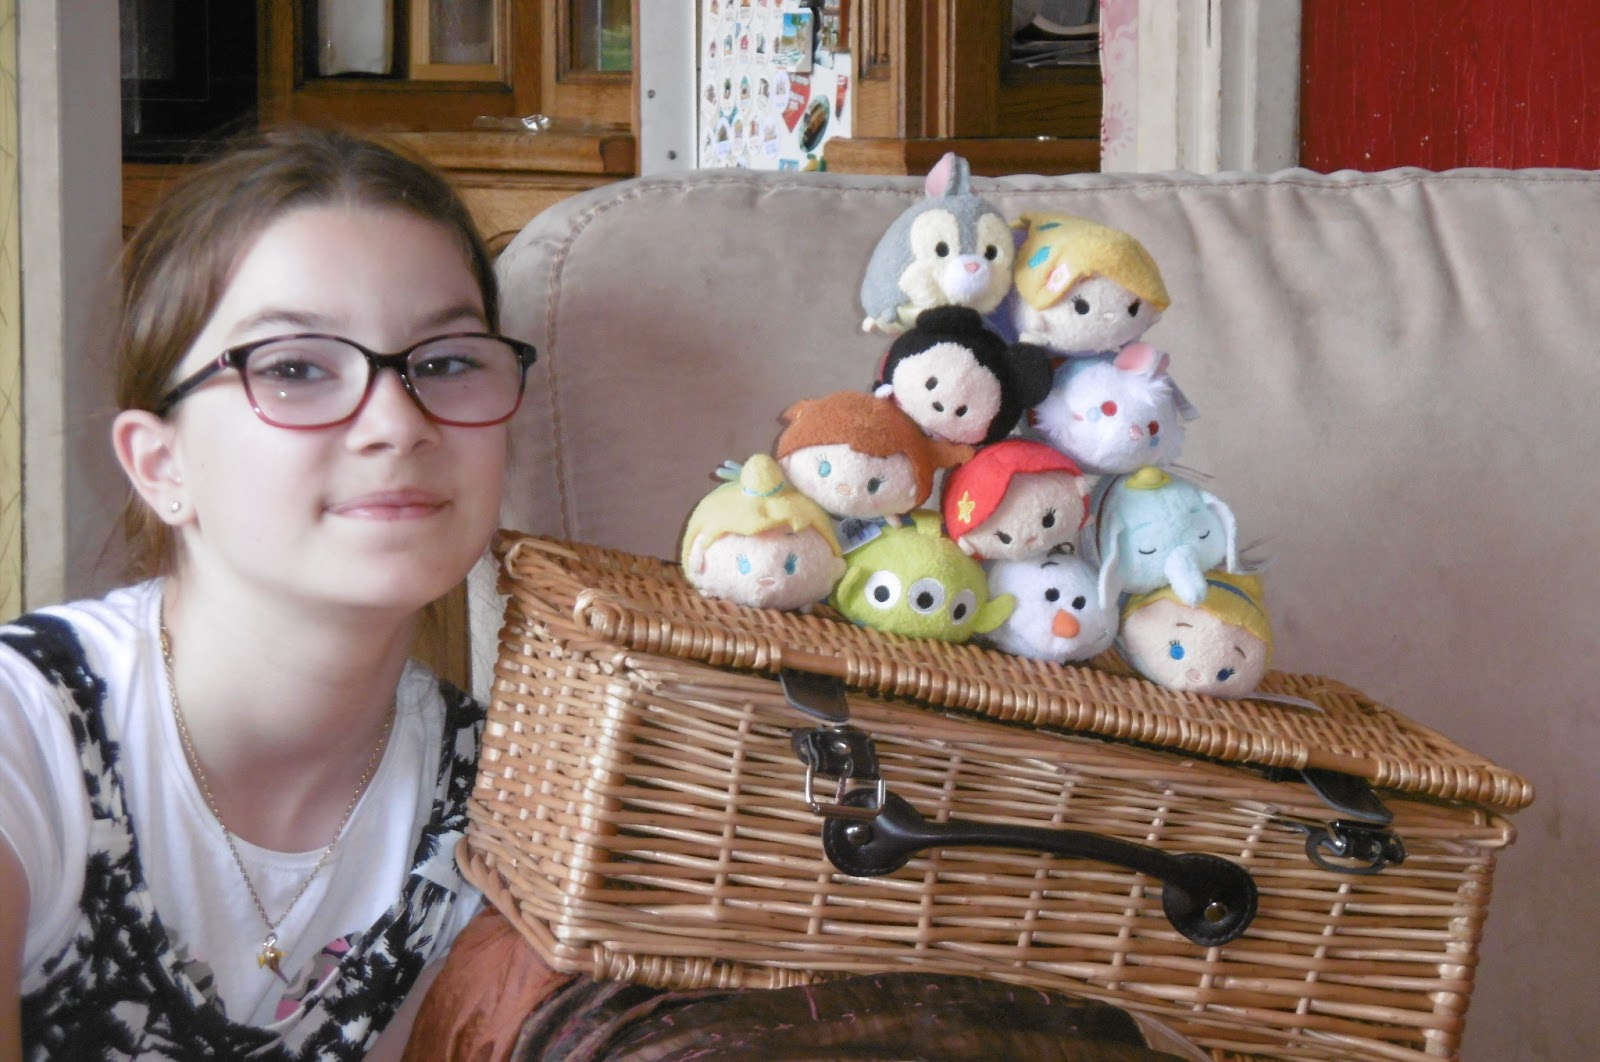 Squishy Toys Craze : Madhouse Family Reviews: Get ready for a new pocket money craze - Tsum Tsum Squishies ! (review)